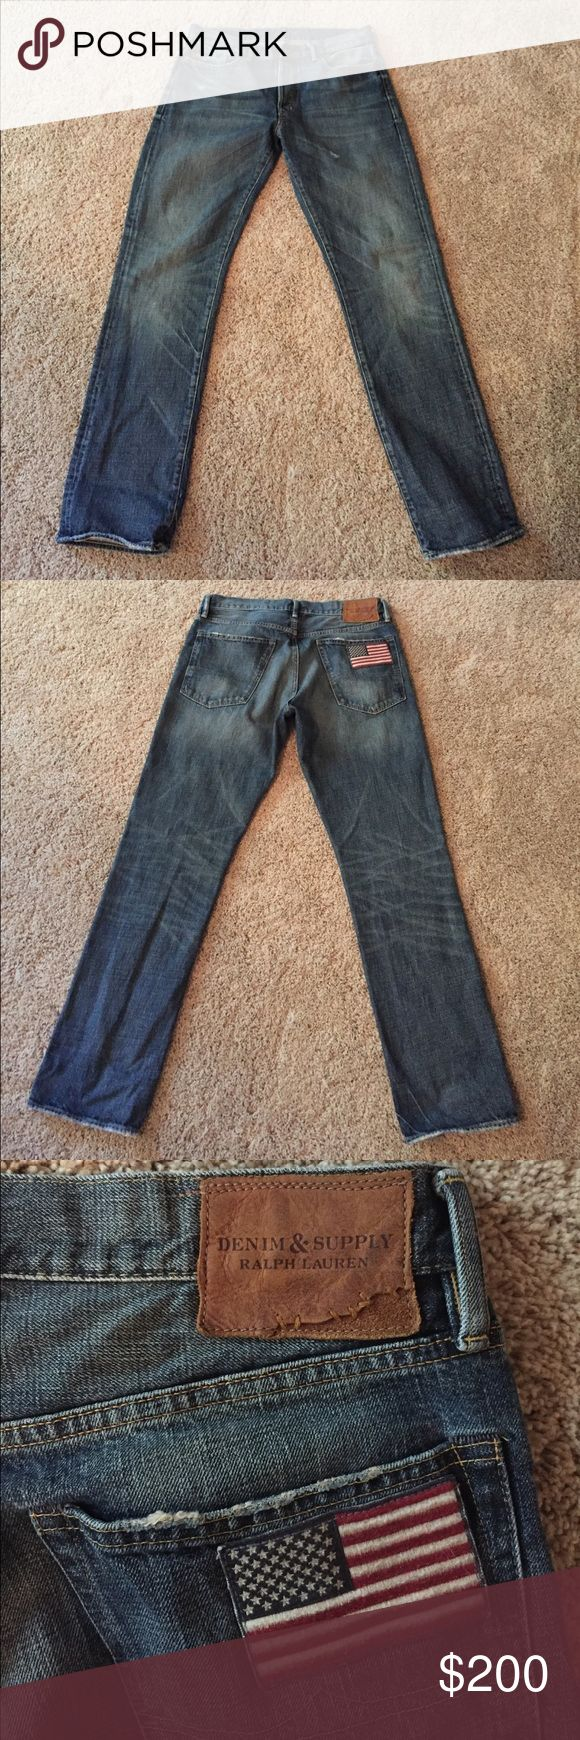 Polo Ralph Lauren Independence Day Straight Jeans Only worn maybe 5 times. Smoke free home. Like new condition. Special edition Independence Day jeans. Denim & Supply Ralph Lauren Jeans Straight